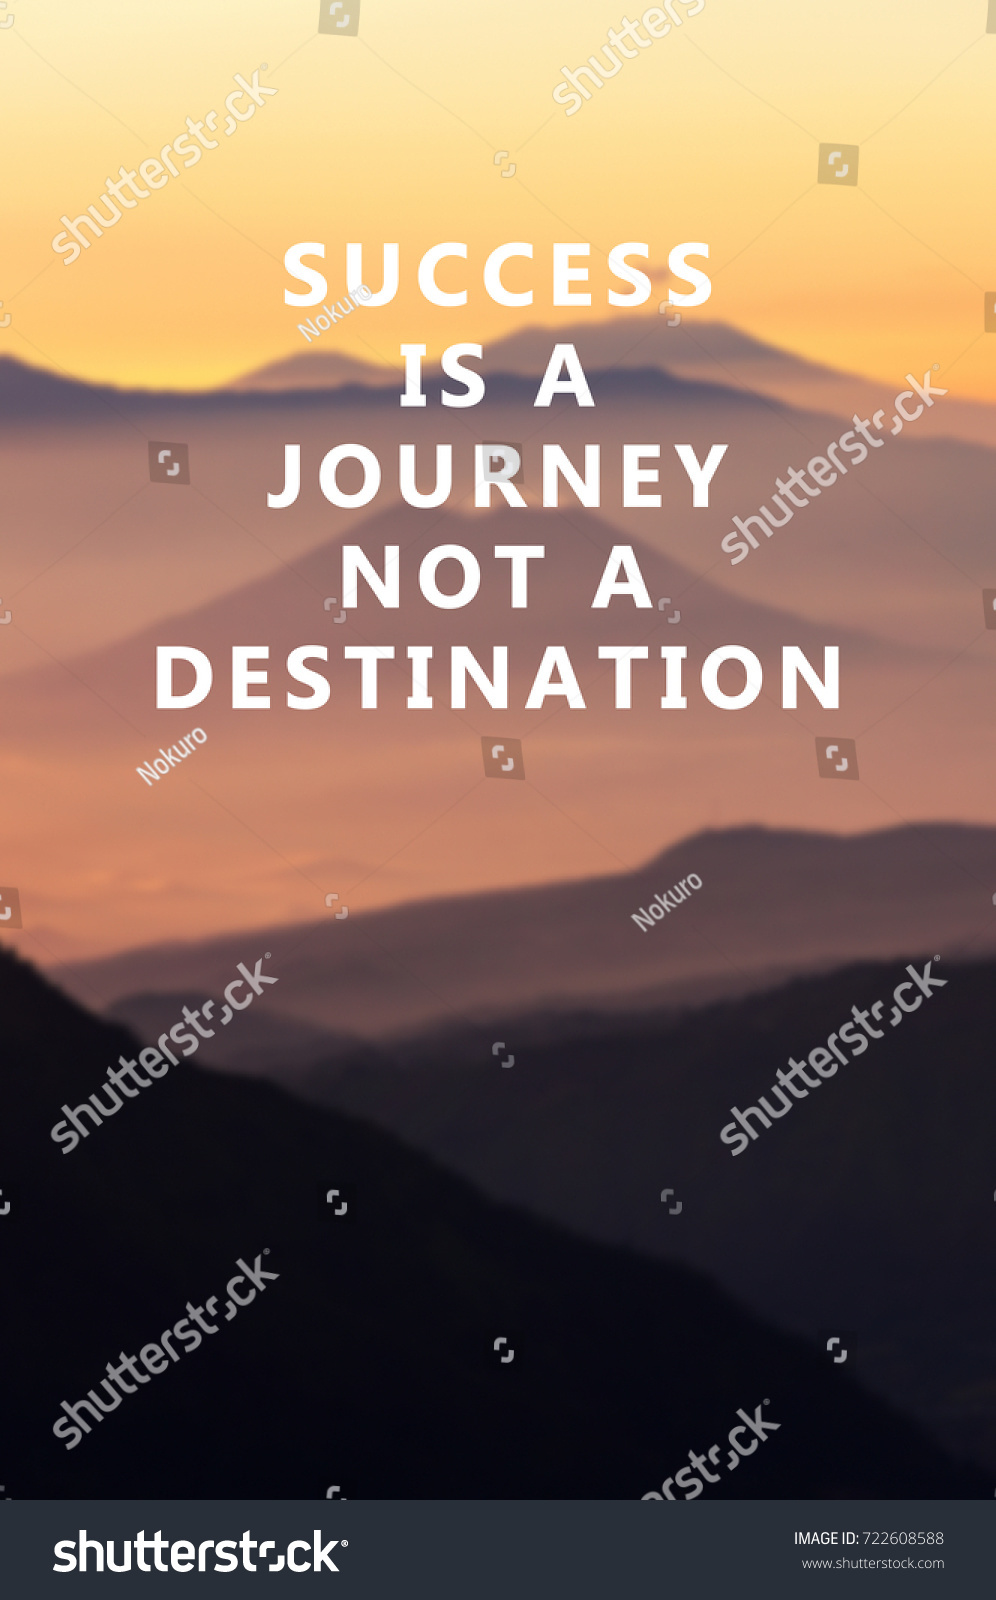 Motivational Inspirational Quotes About Life Life Motivational Inspirational Quotes Success Journey Stock Photo